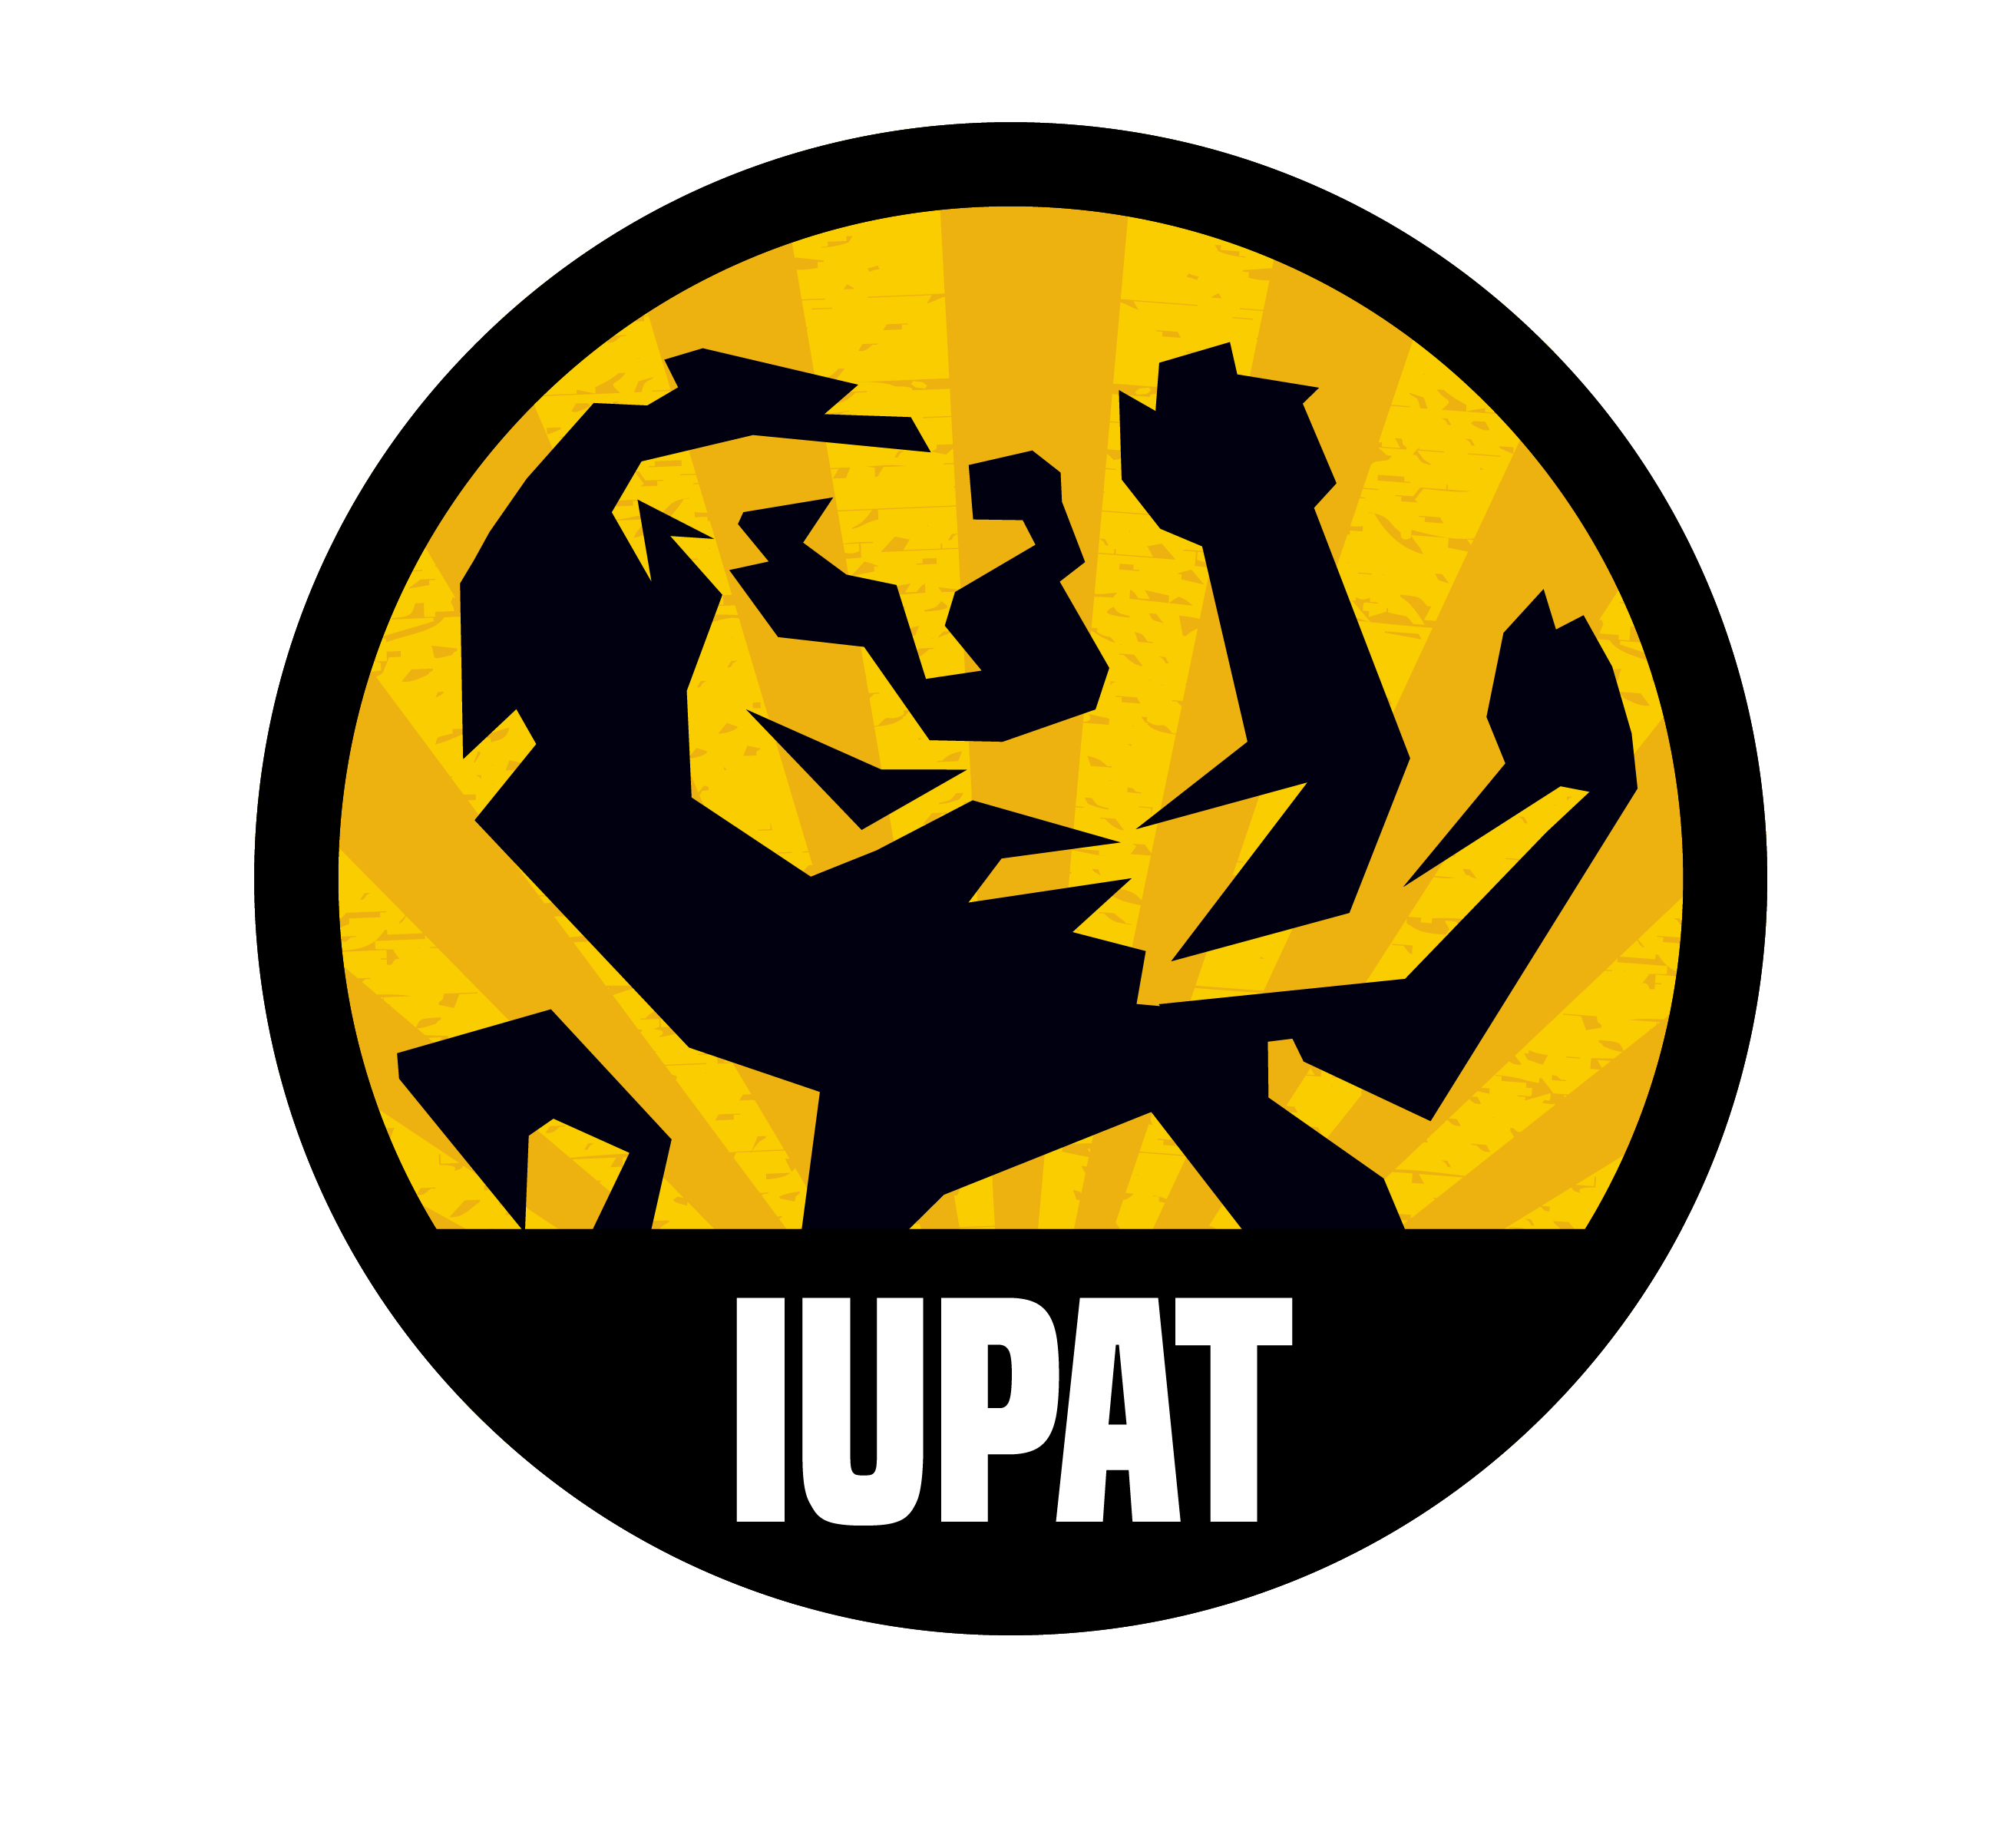 IUPAT Pension